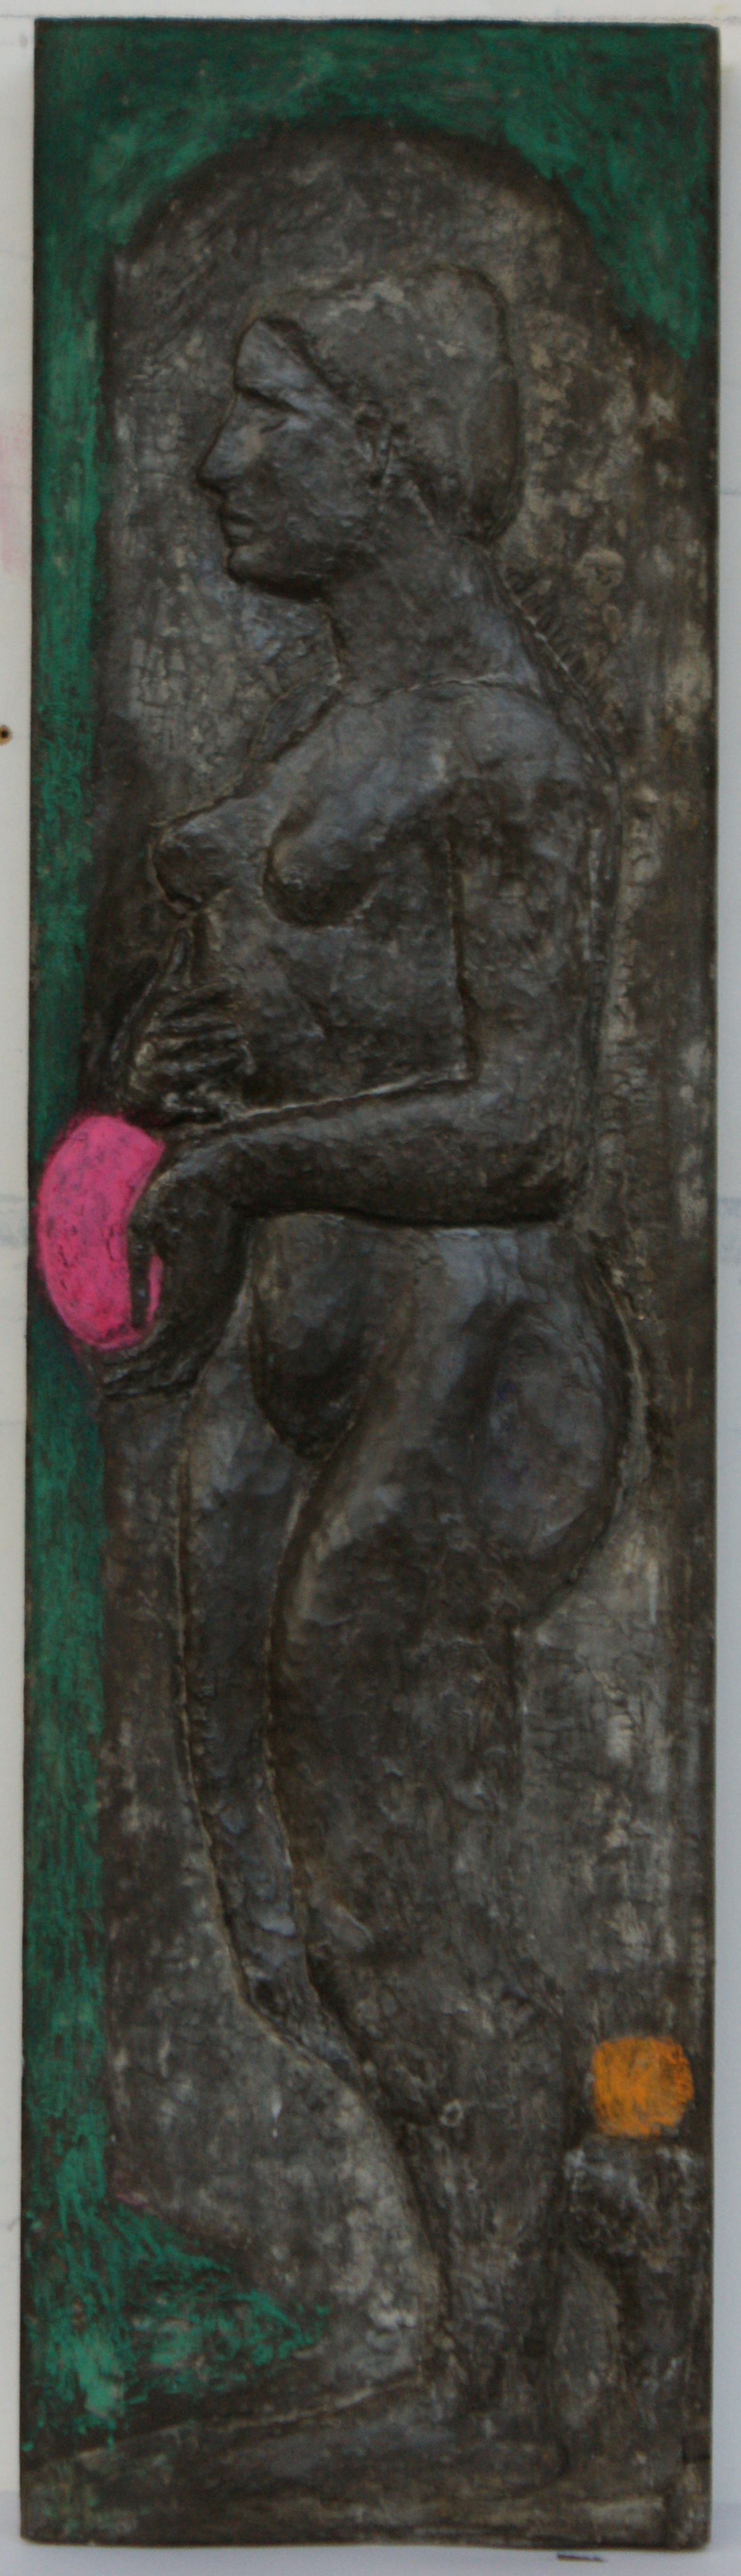 The Gift, bas-relief, cement fondu, 2012